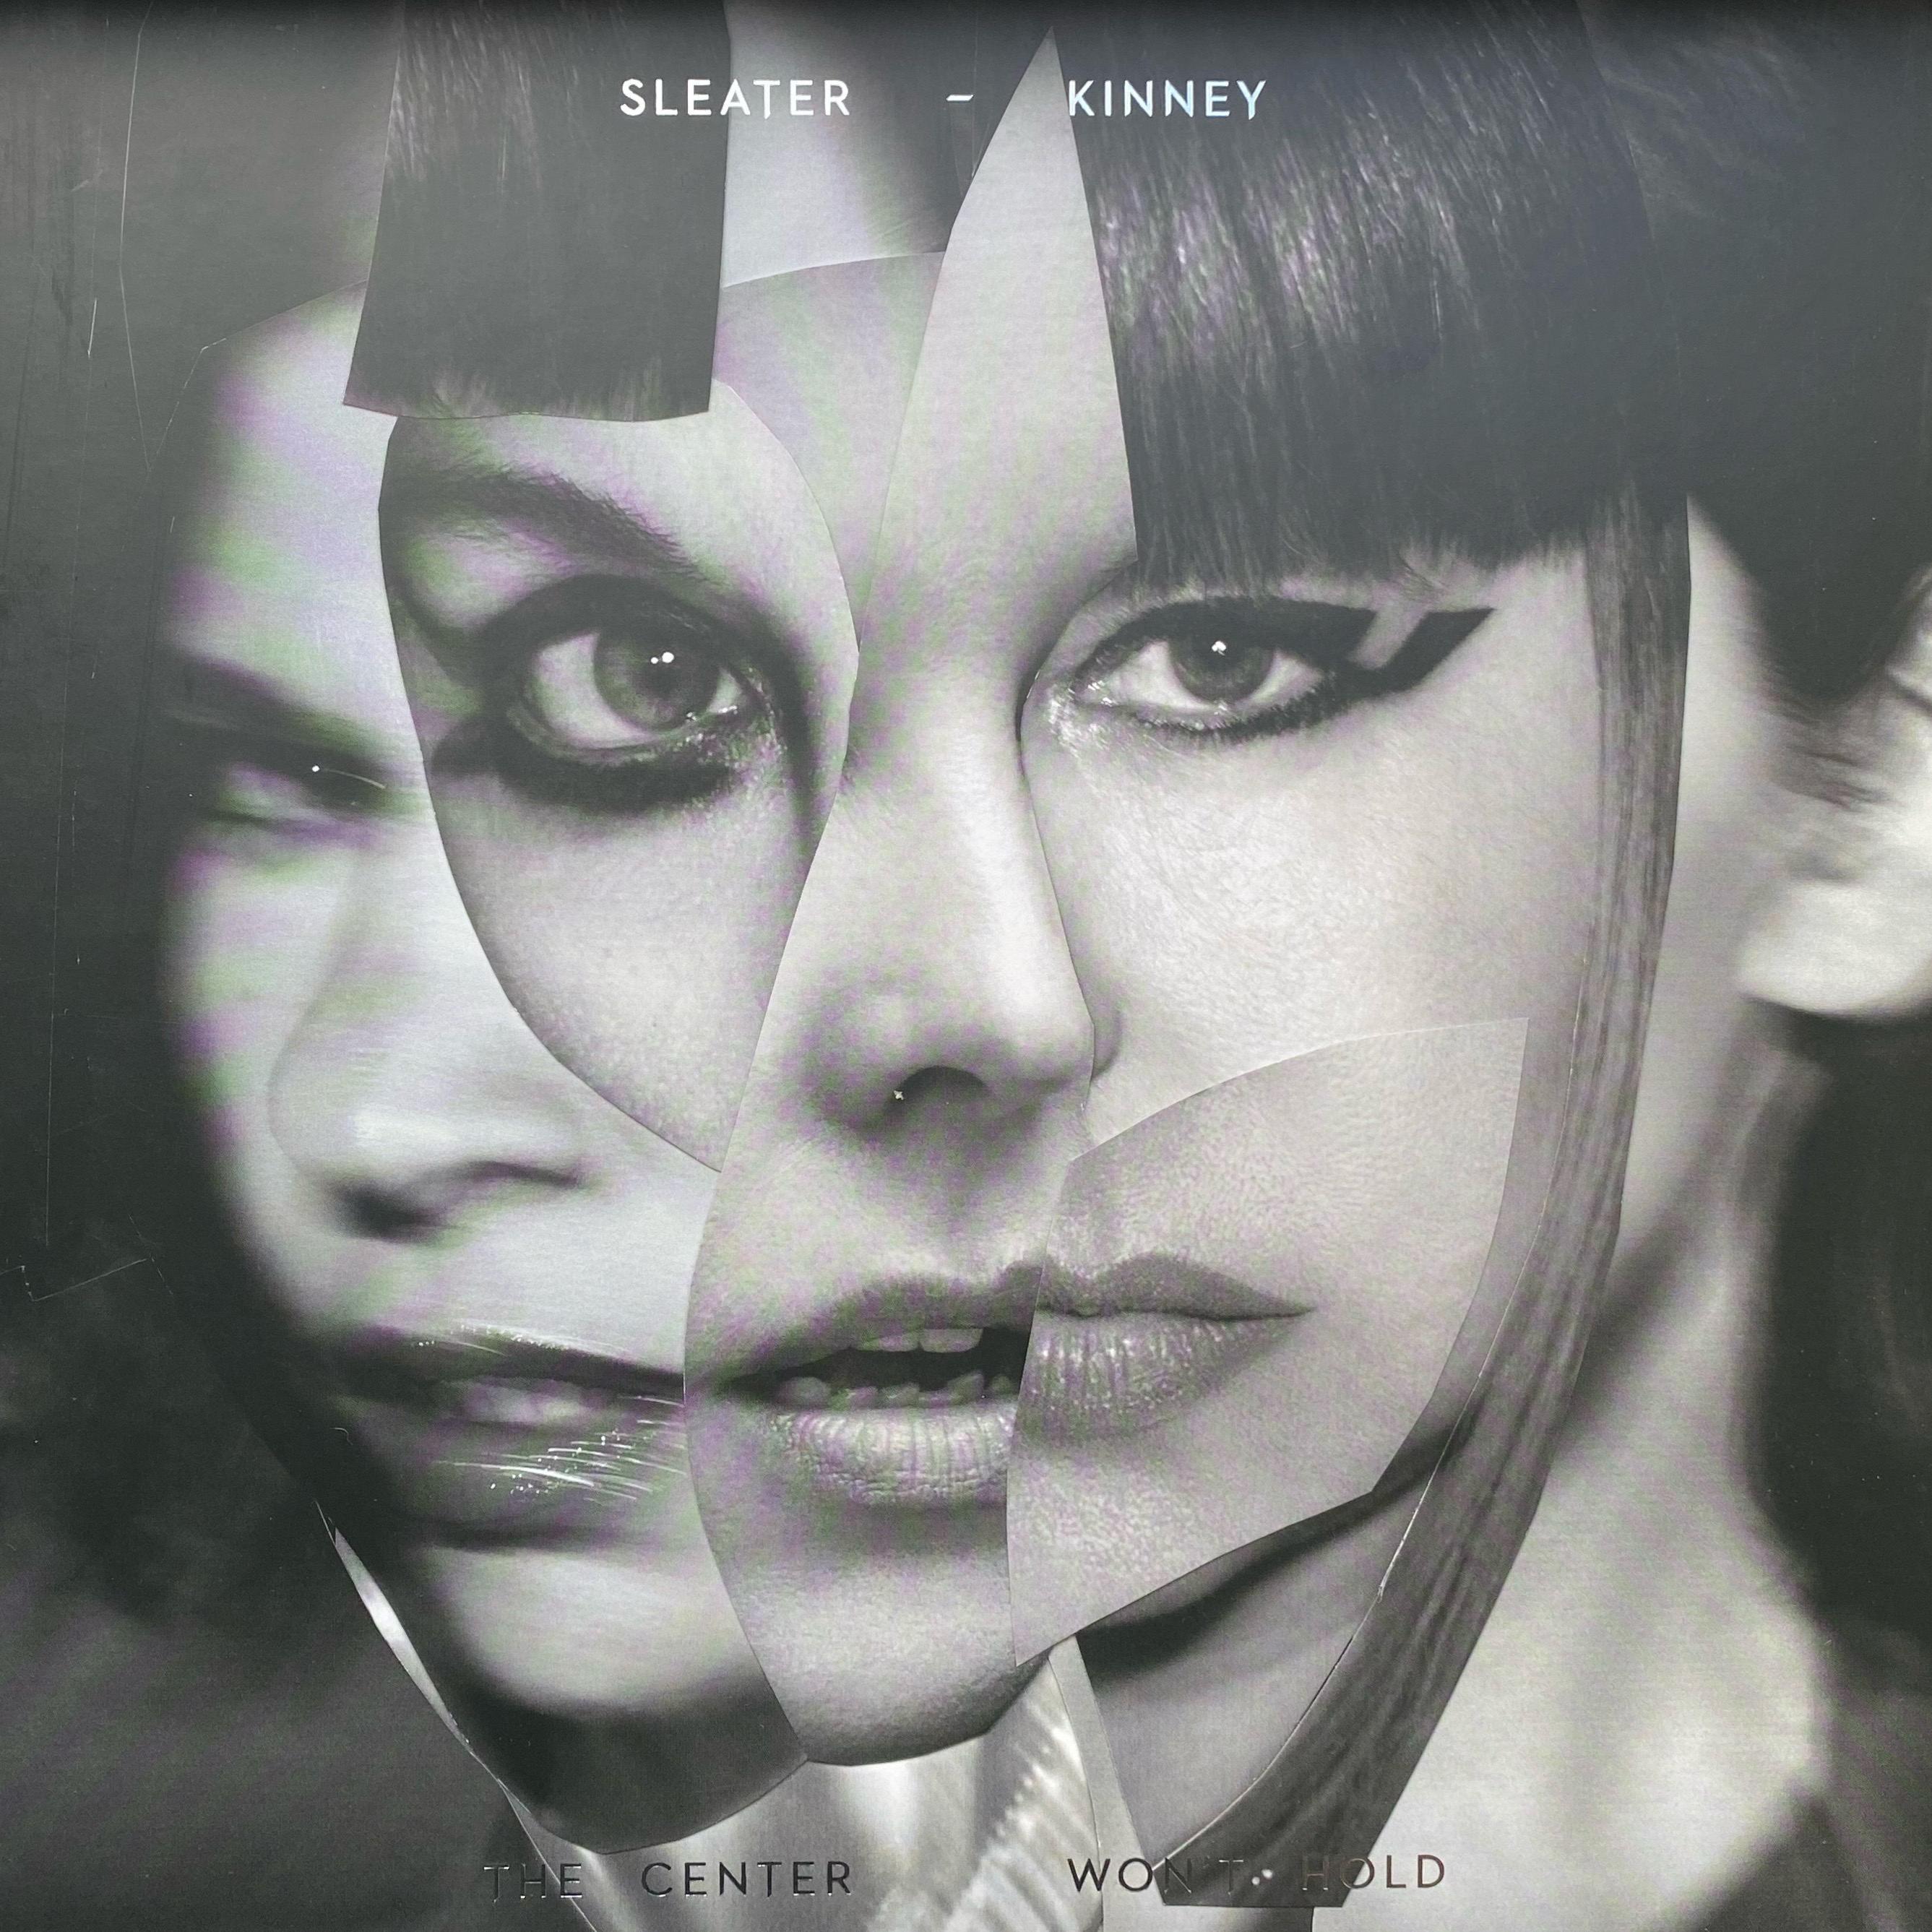 Notable Tracks: Sleater-Kinney #1